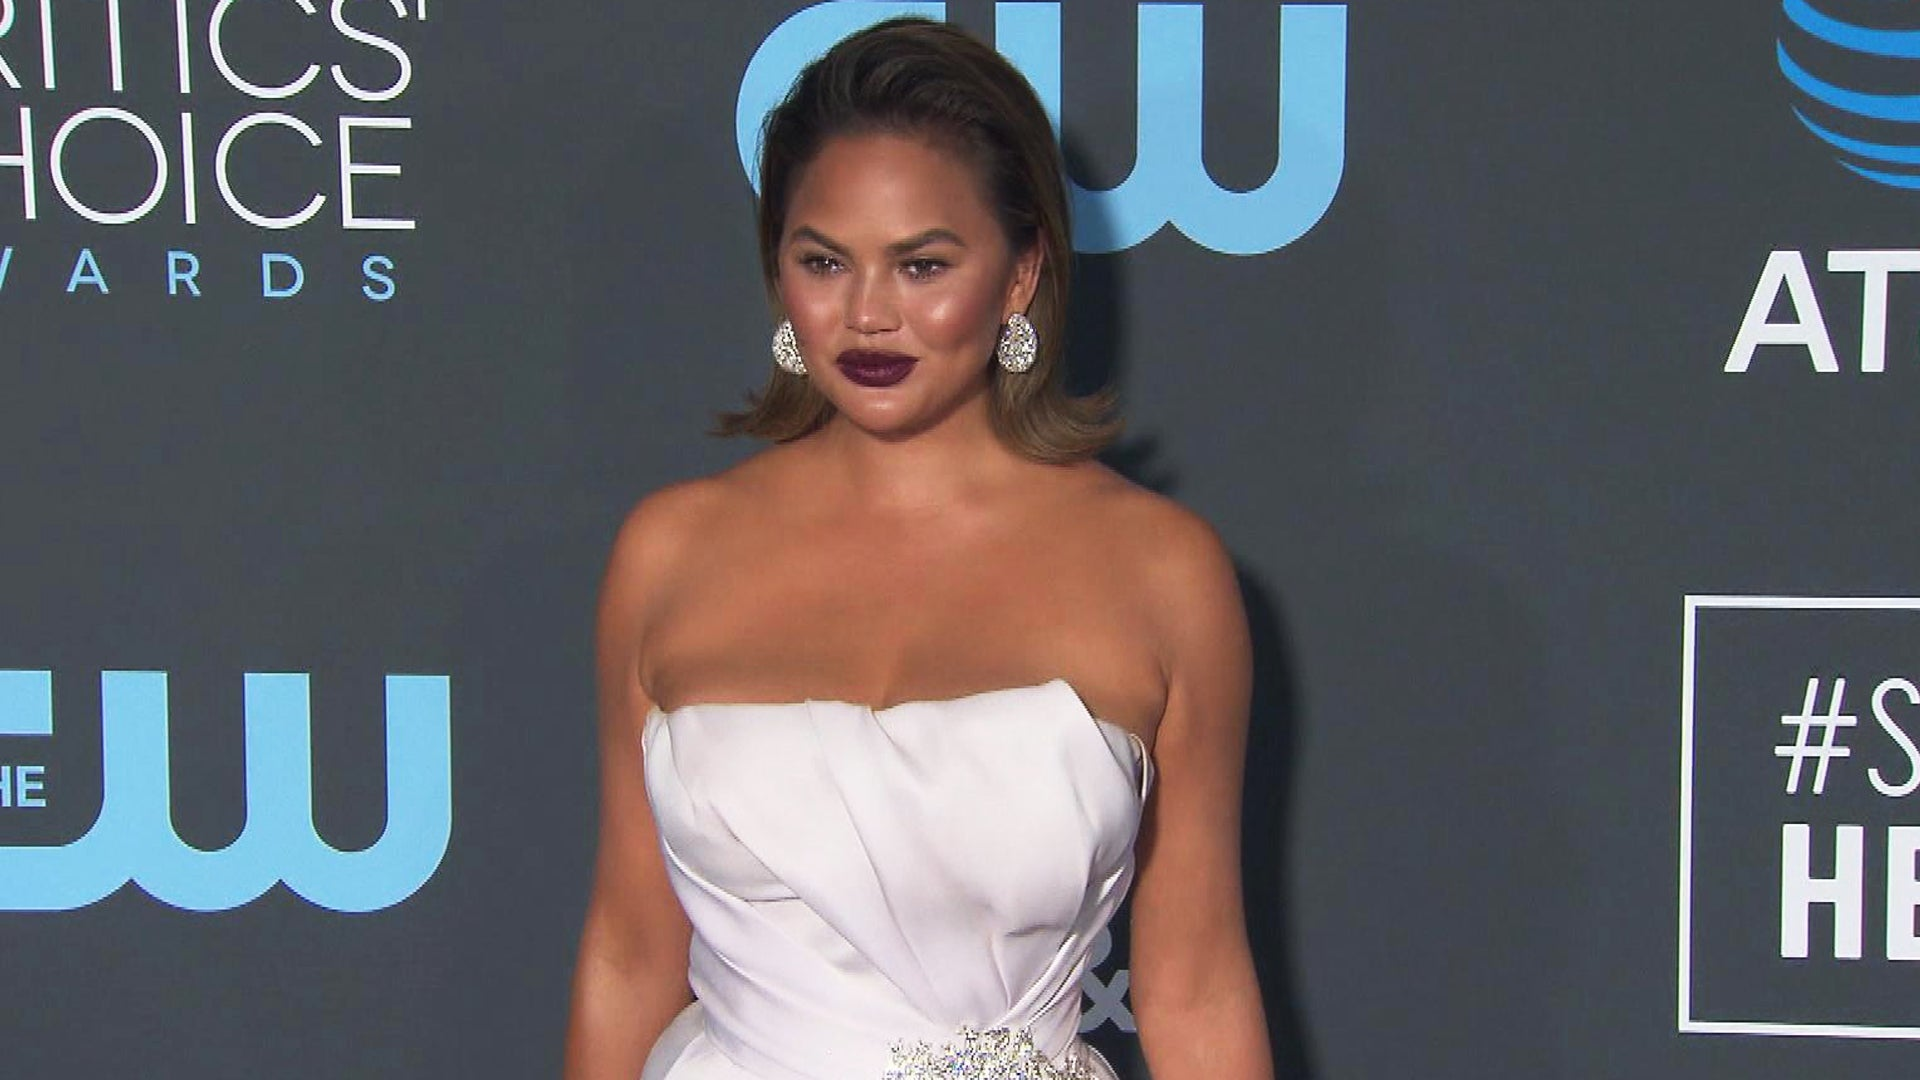 Chrissy Teigen Gives Painful Update To Fans On Breast Implant Removal Surgery